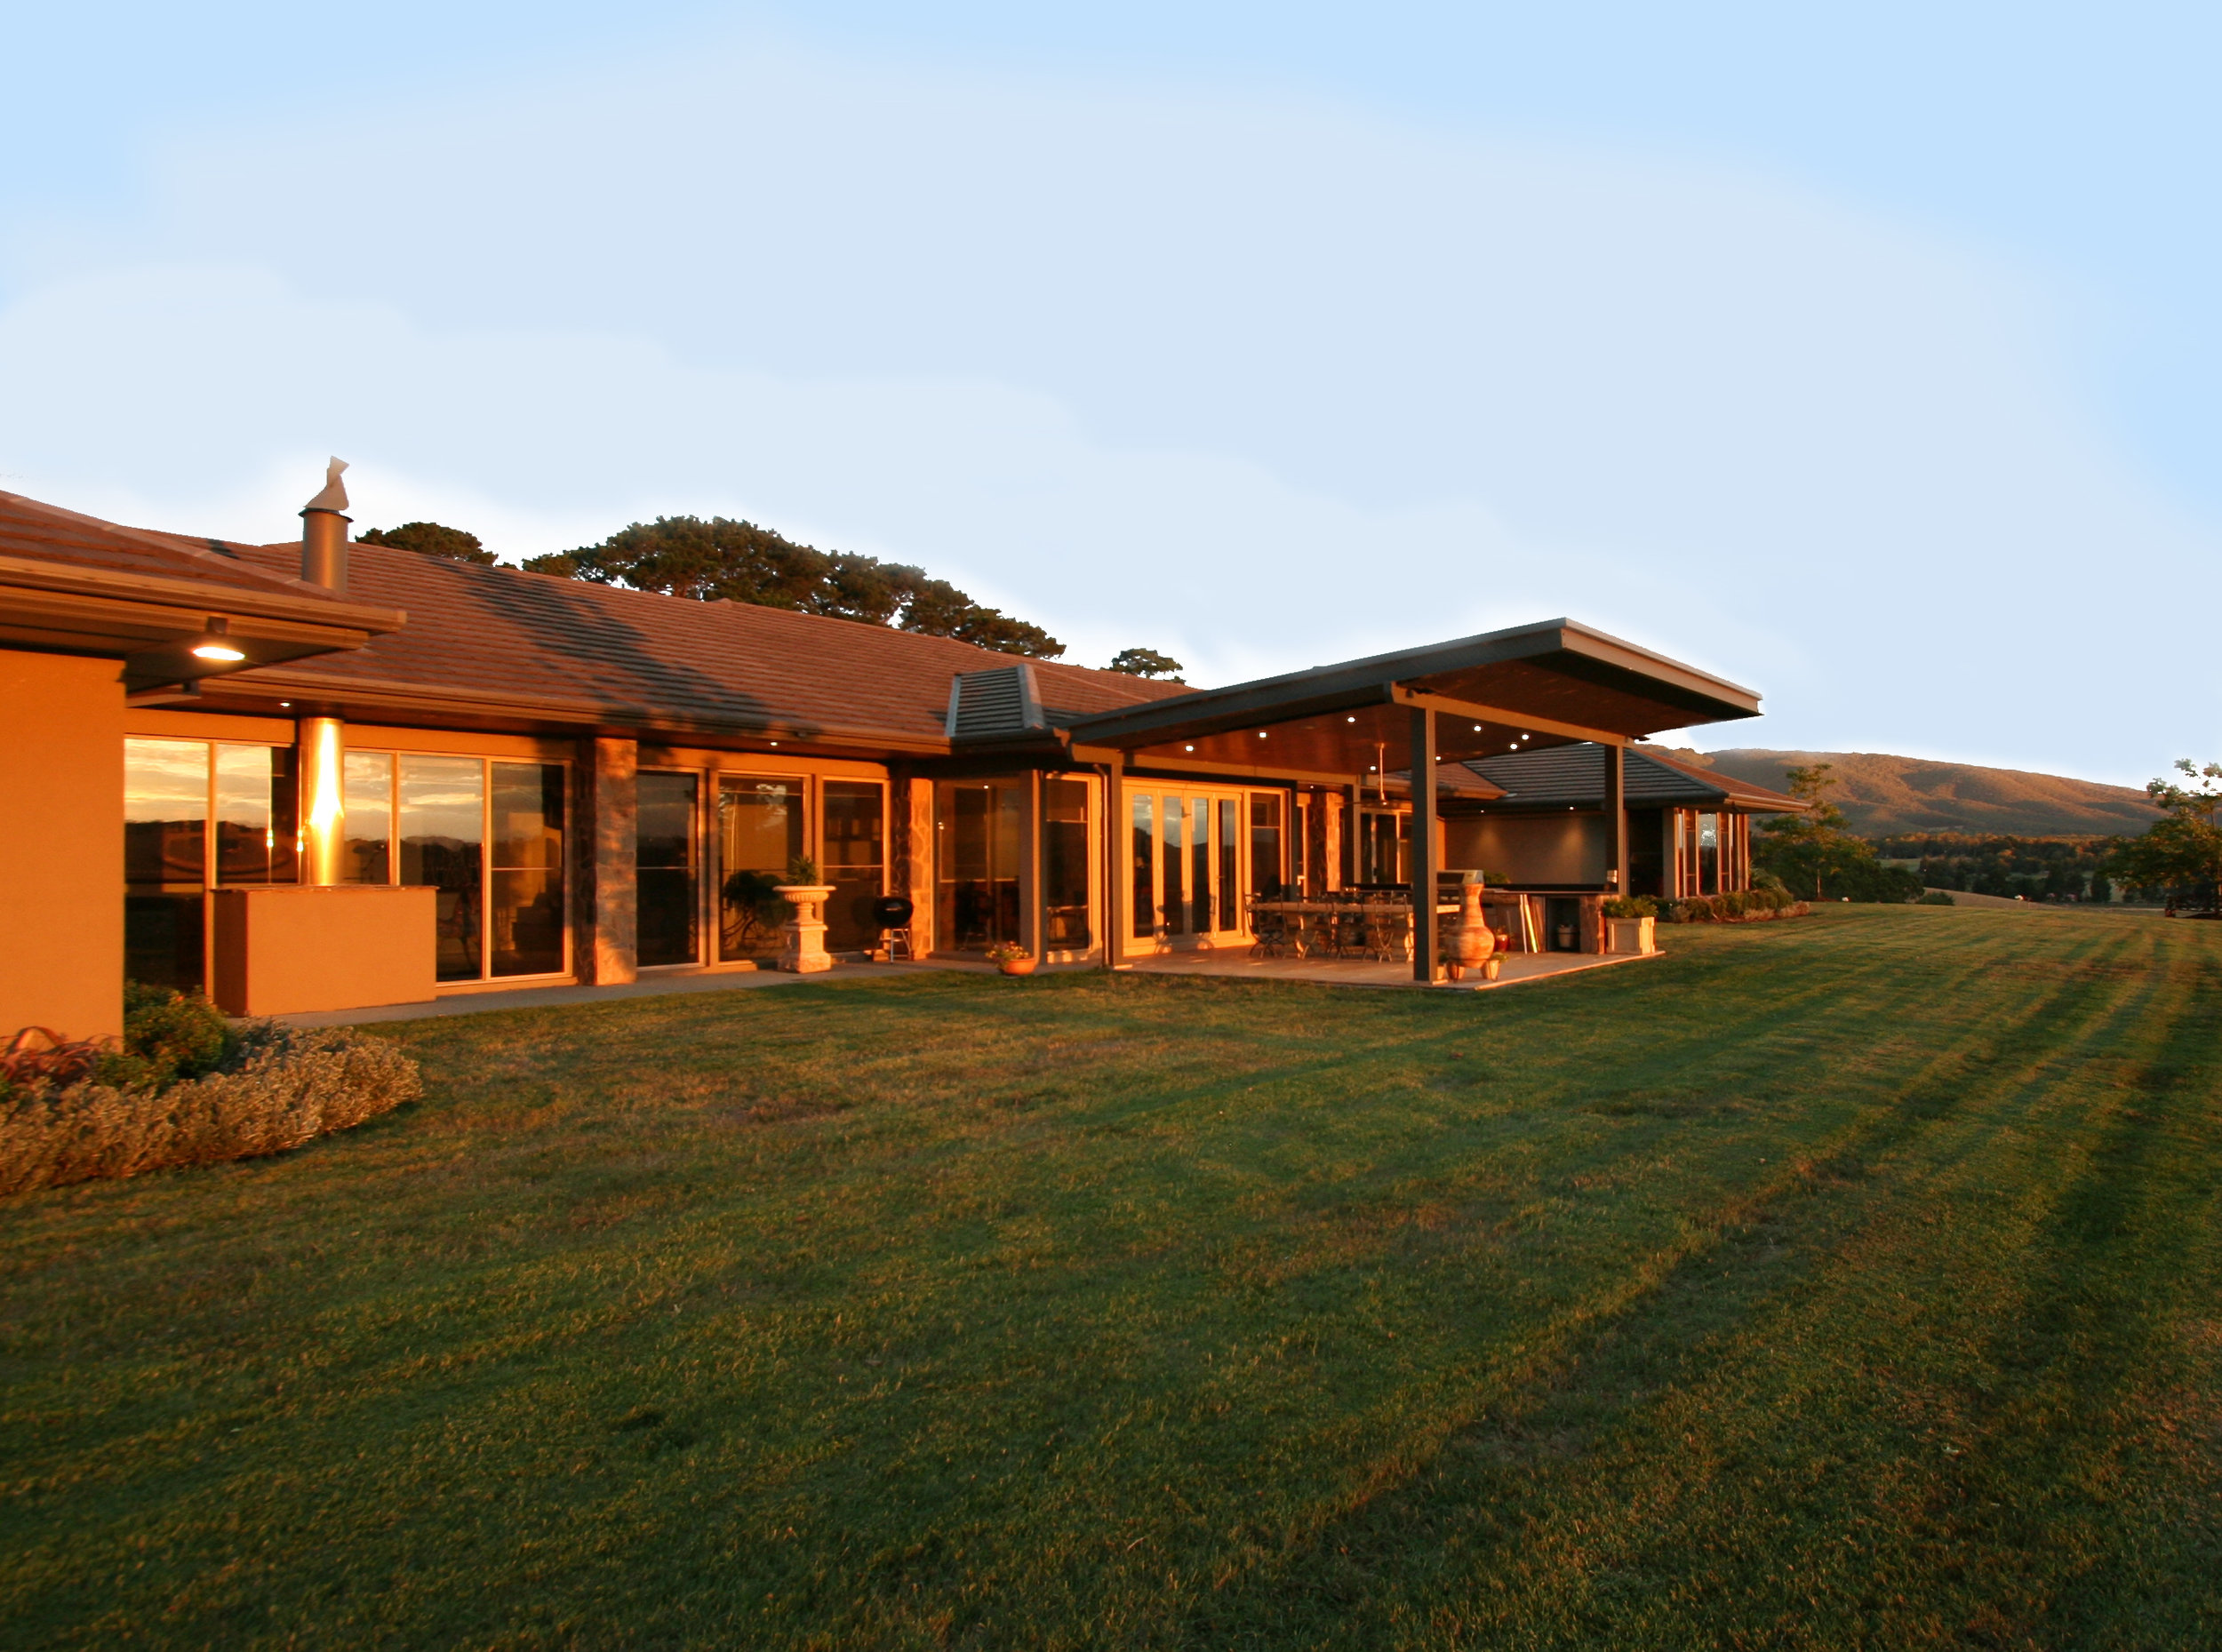 Sprawling rural home, overlooking fertile acreage of the Yarra Valley - Design: Matclair Designs  Construction & PM: Matclair